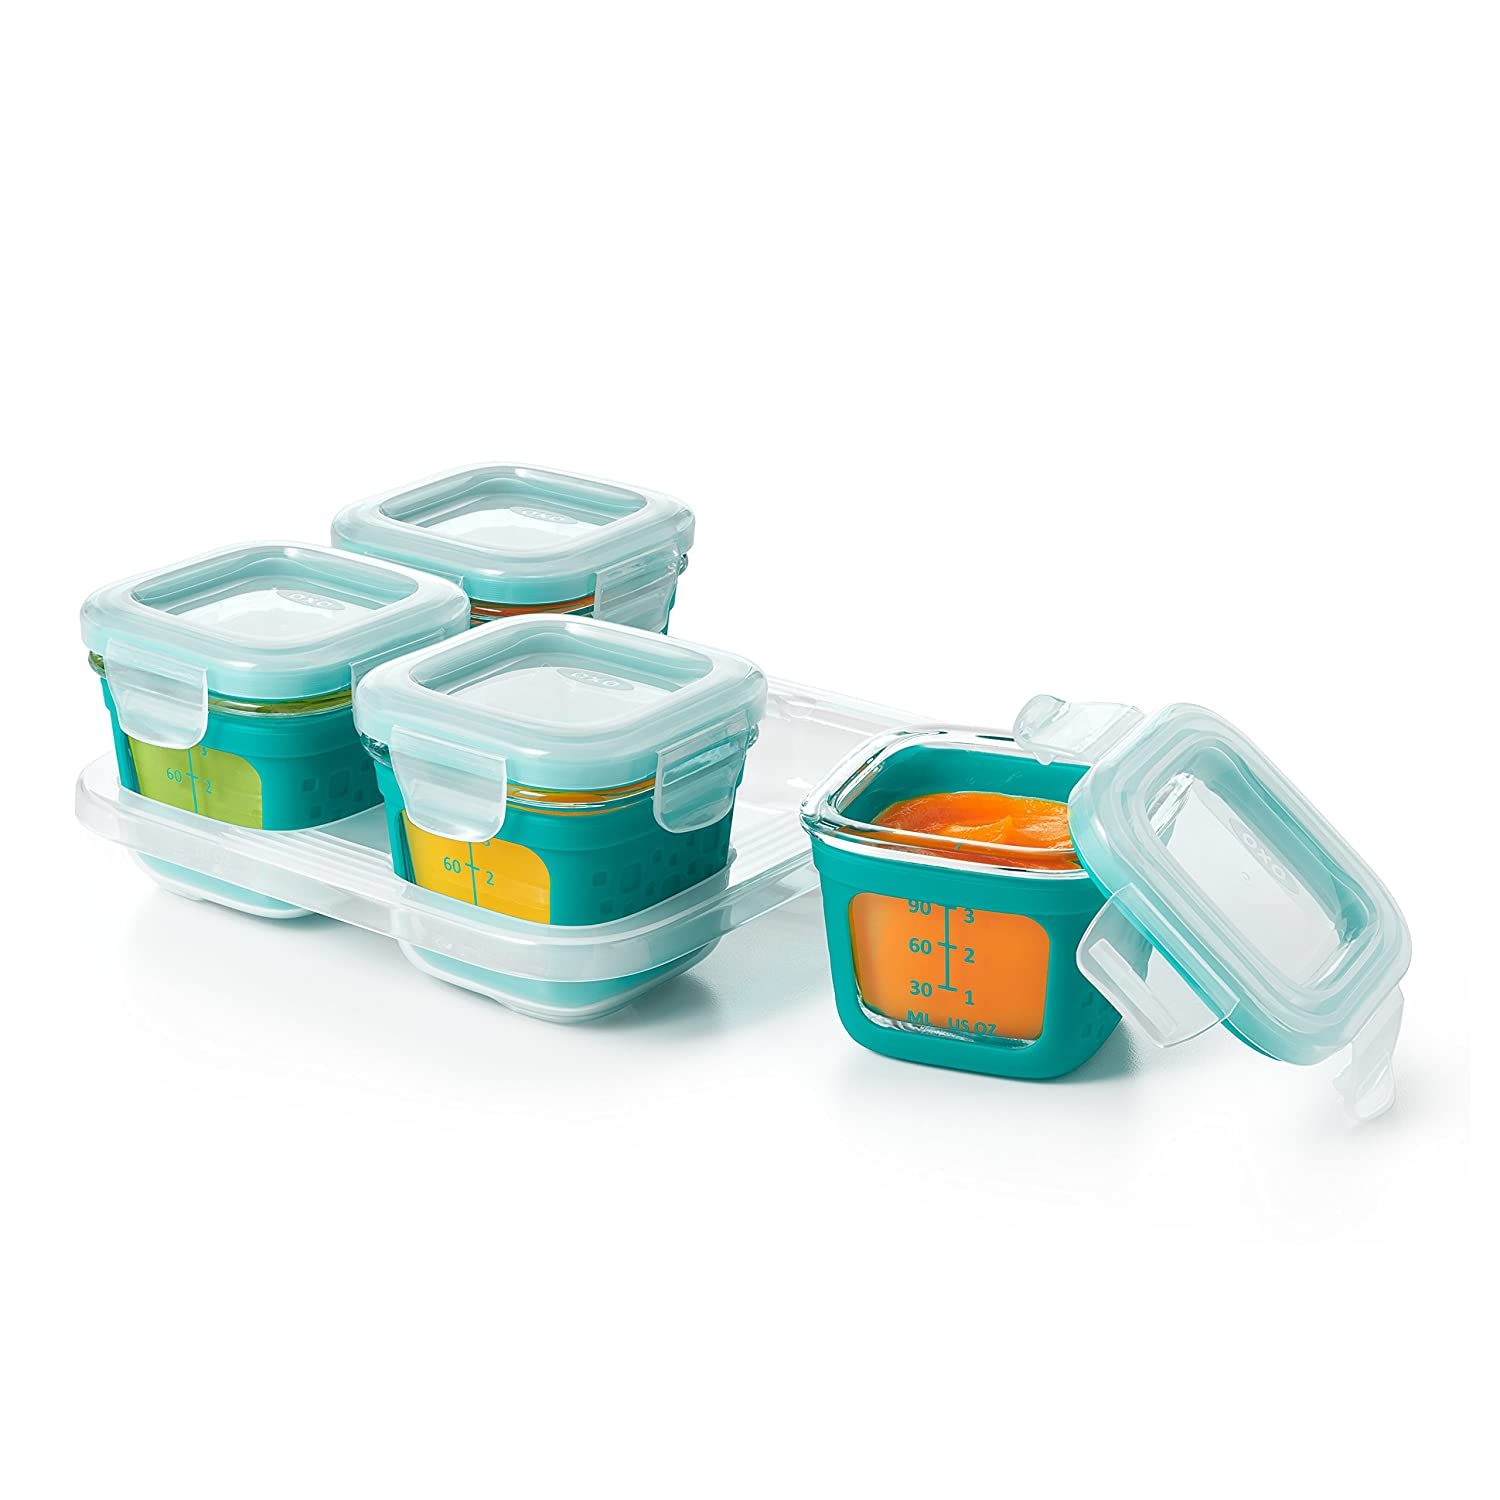 OXO Tot Glass Baby Blocks Food Storage Containers with Silicone Sleeves, Teal, 4 oz 61130500